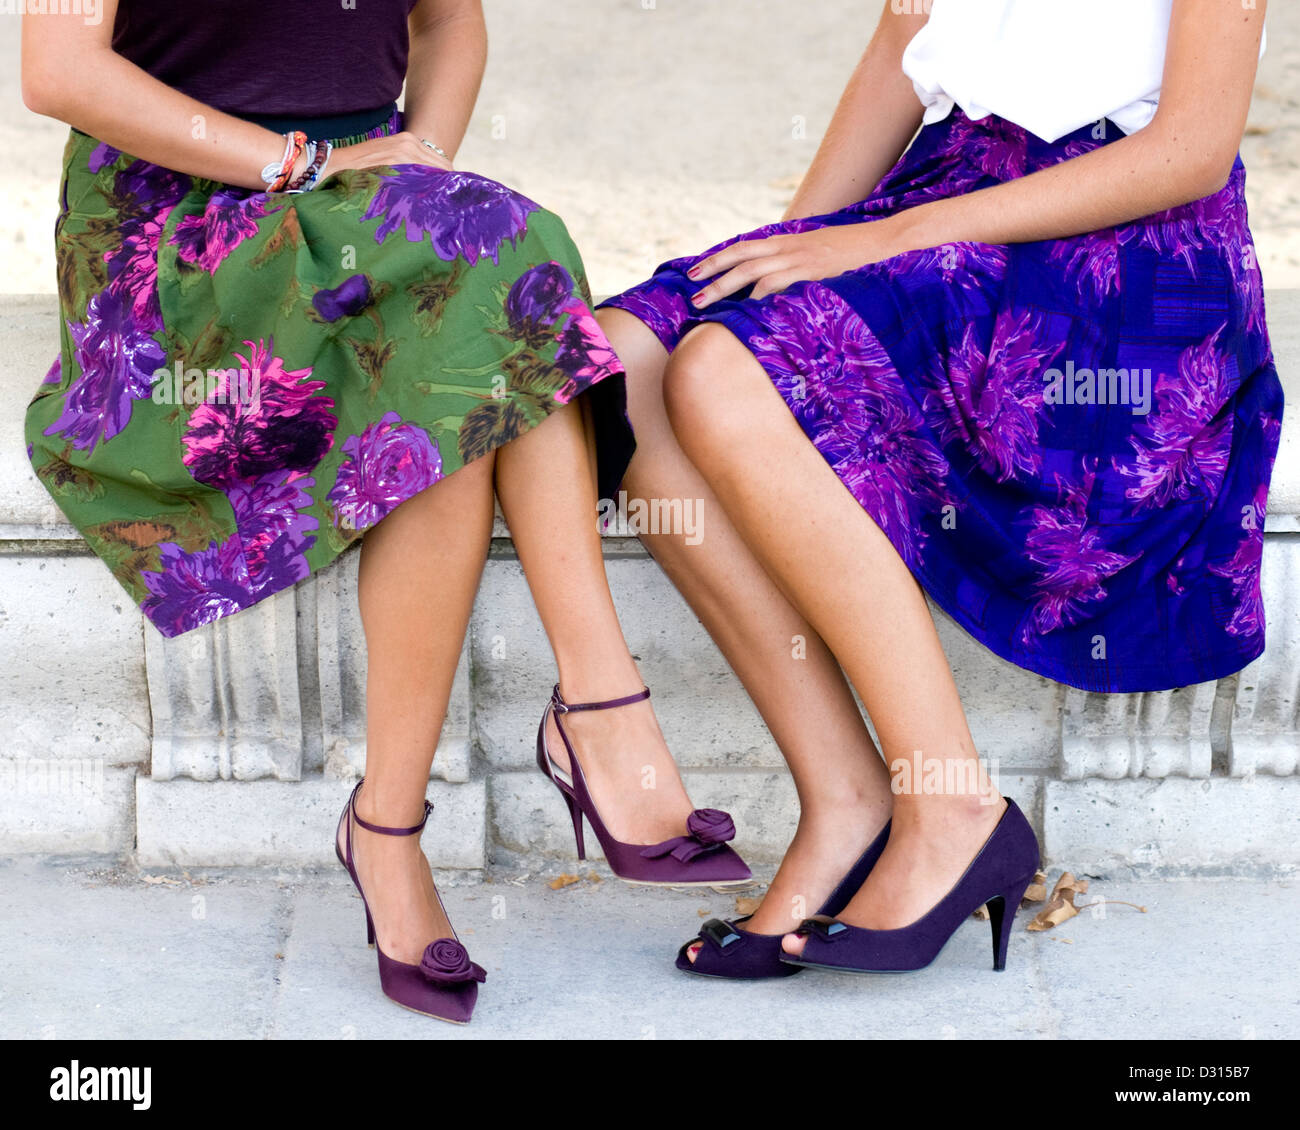 girls in flowery skirts high heeled shoes stone bench - Stock Image